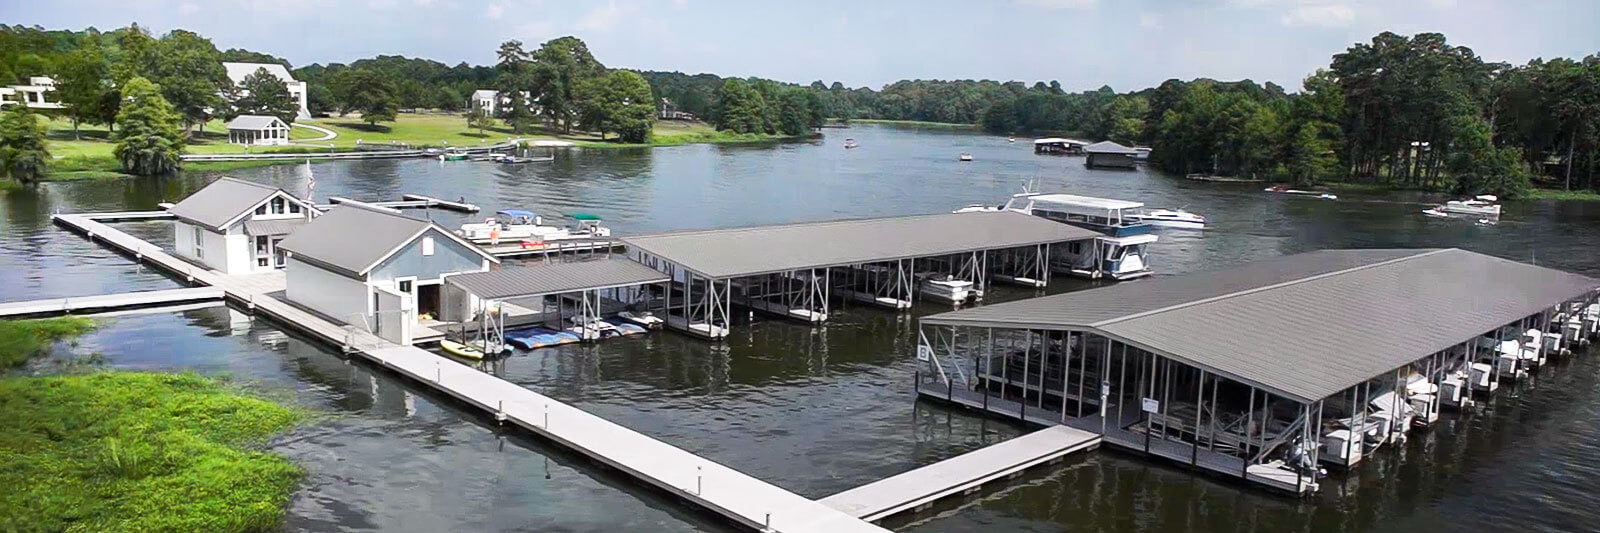 Lake Blackshear Marina 3